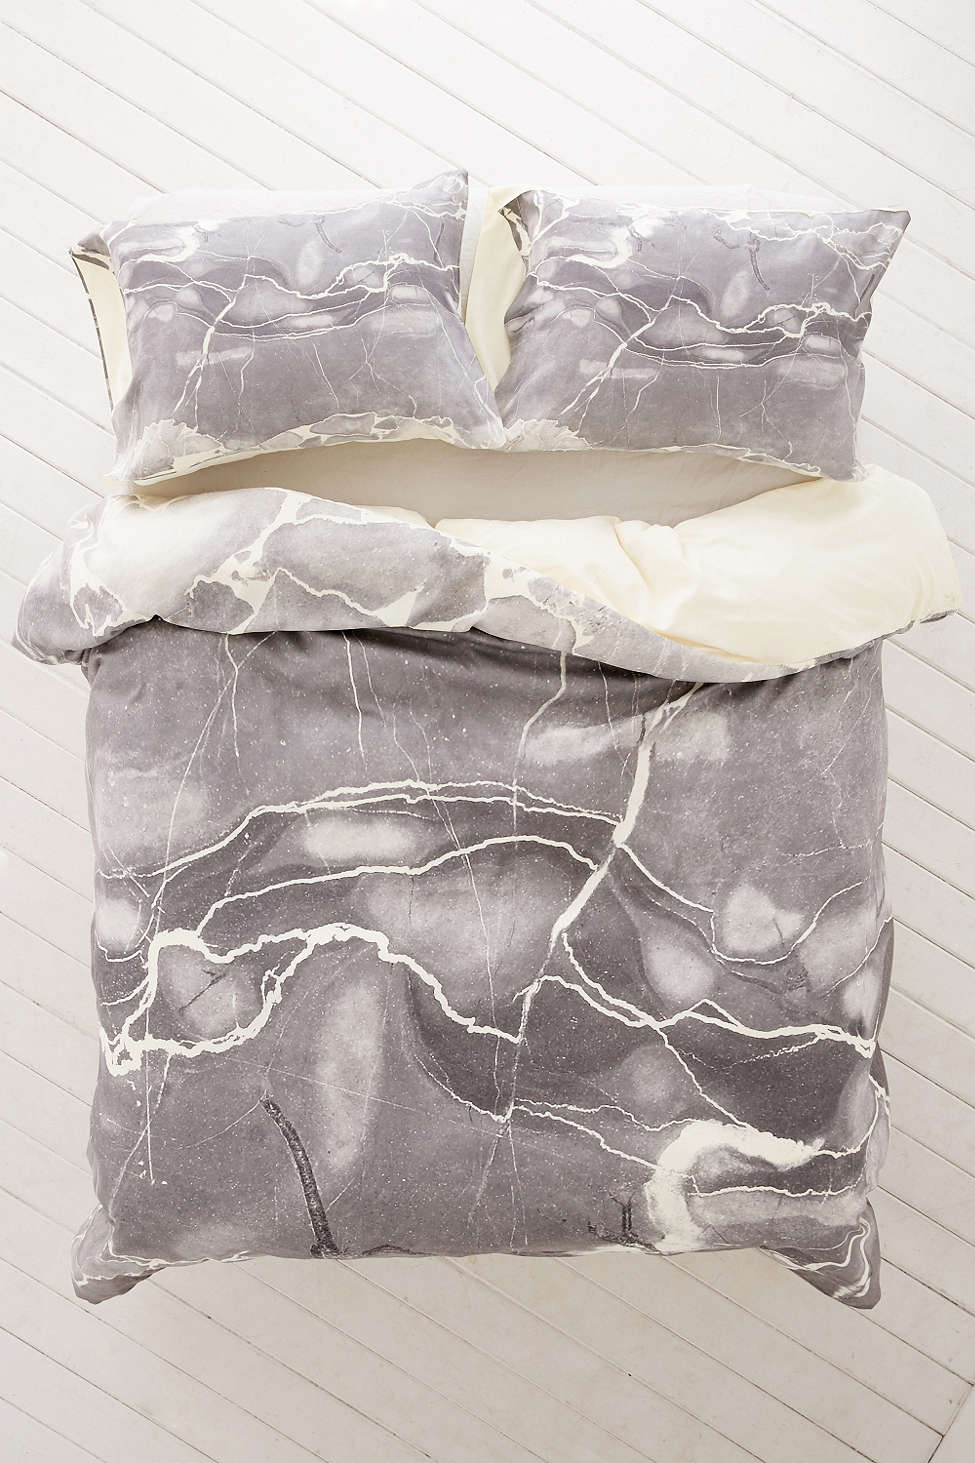 Emanuela Carratoni's Grey Marble on Urban Outfitter